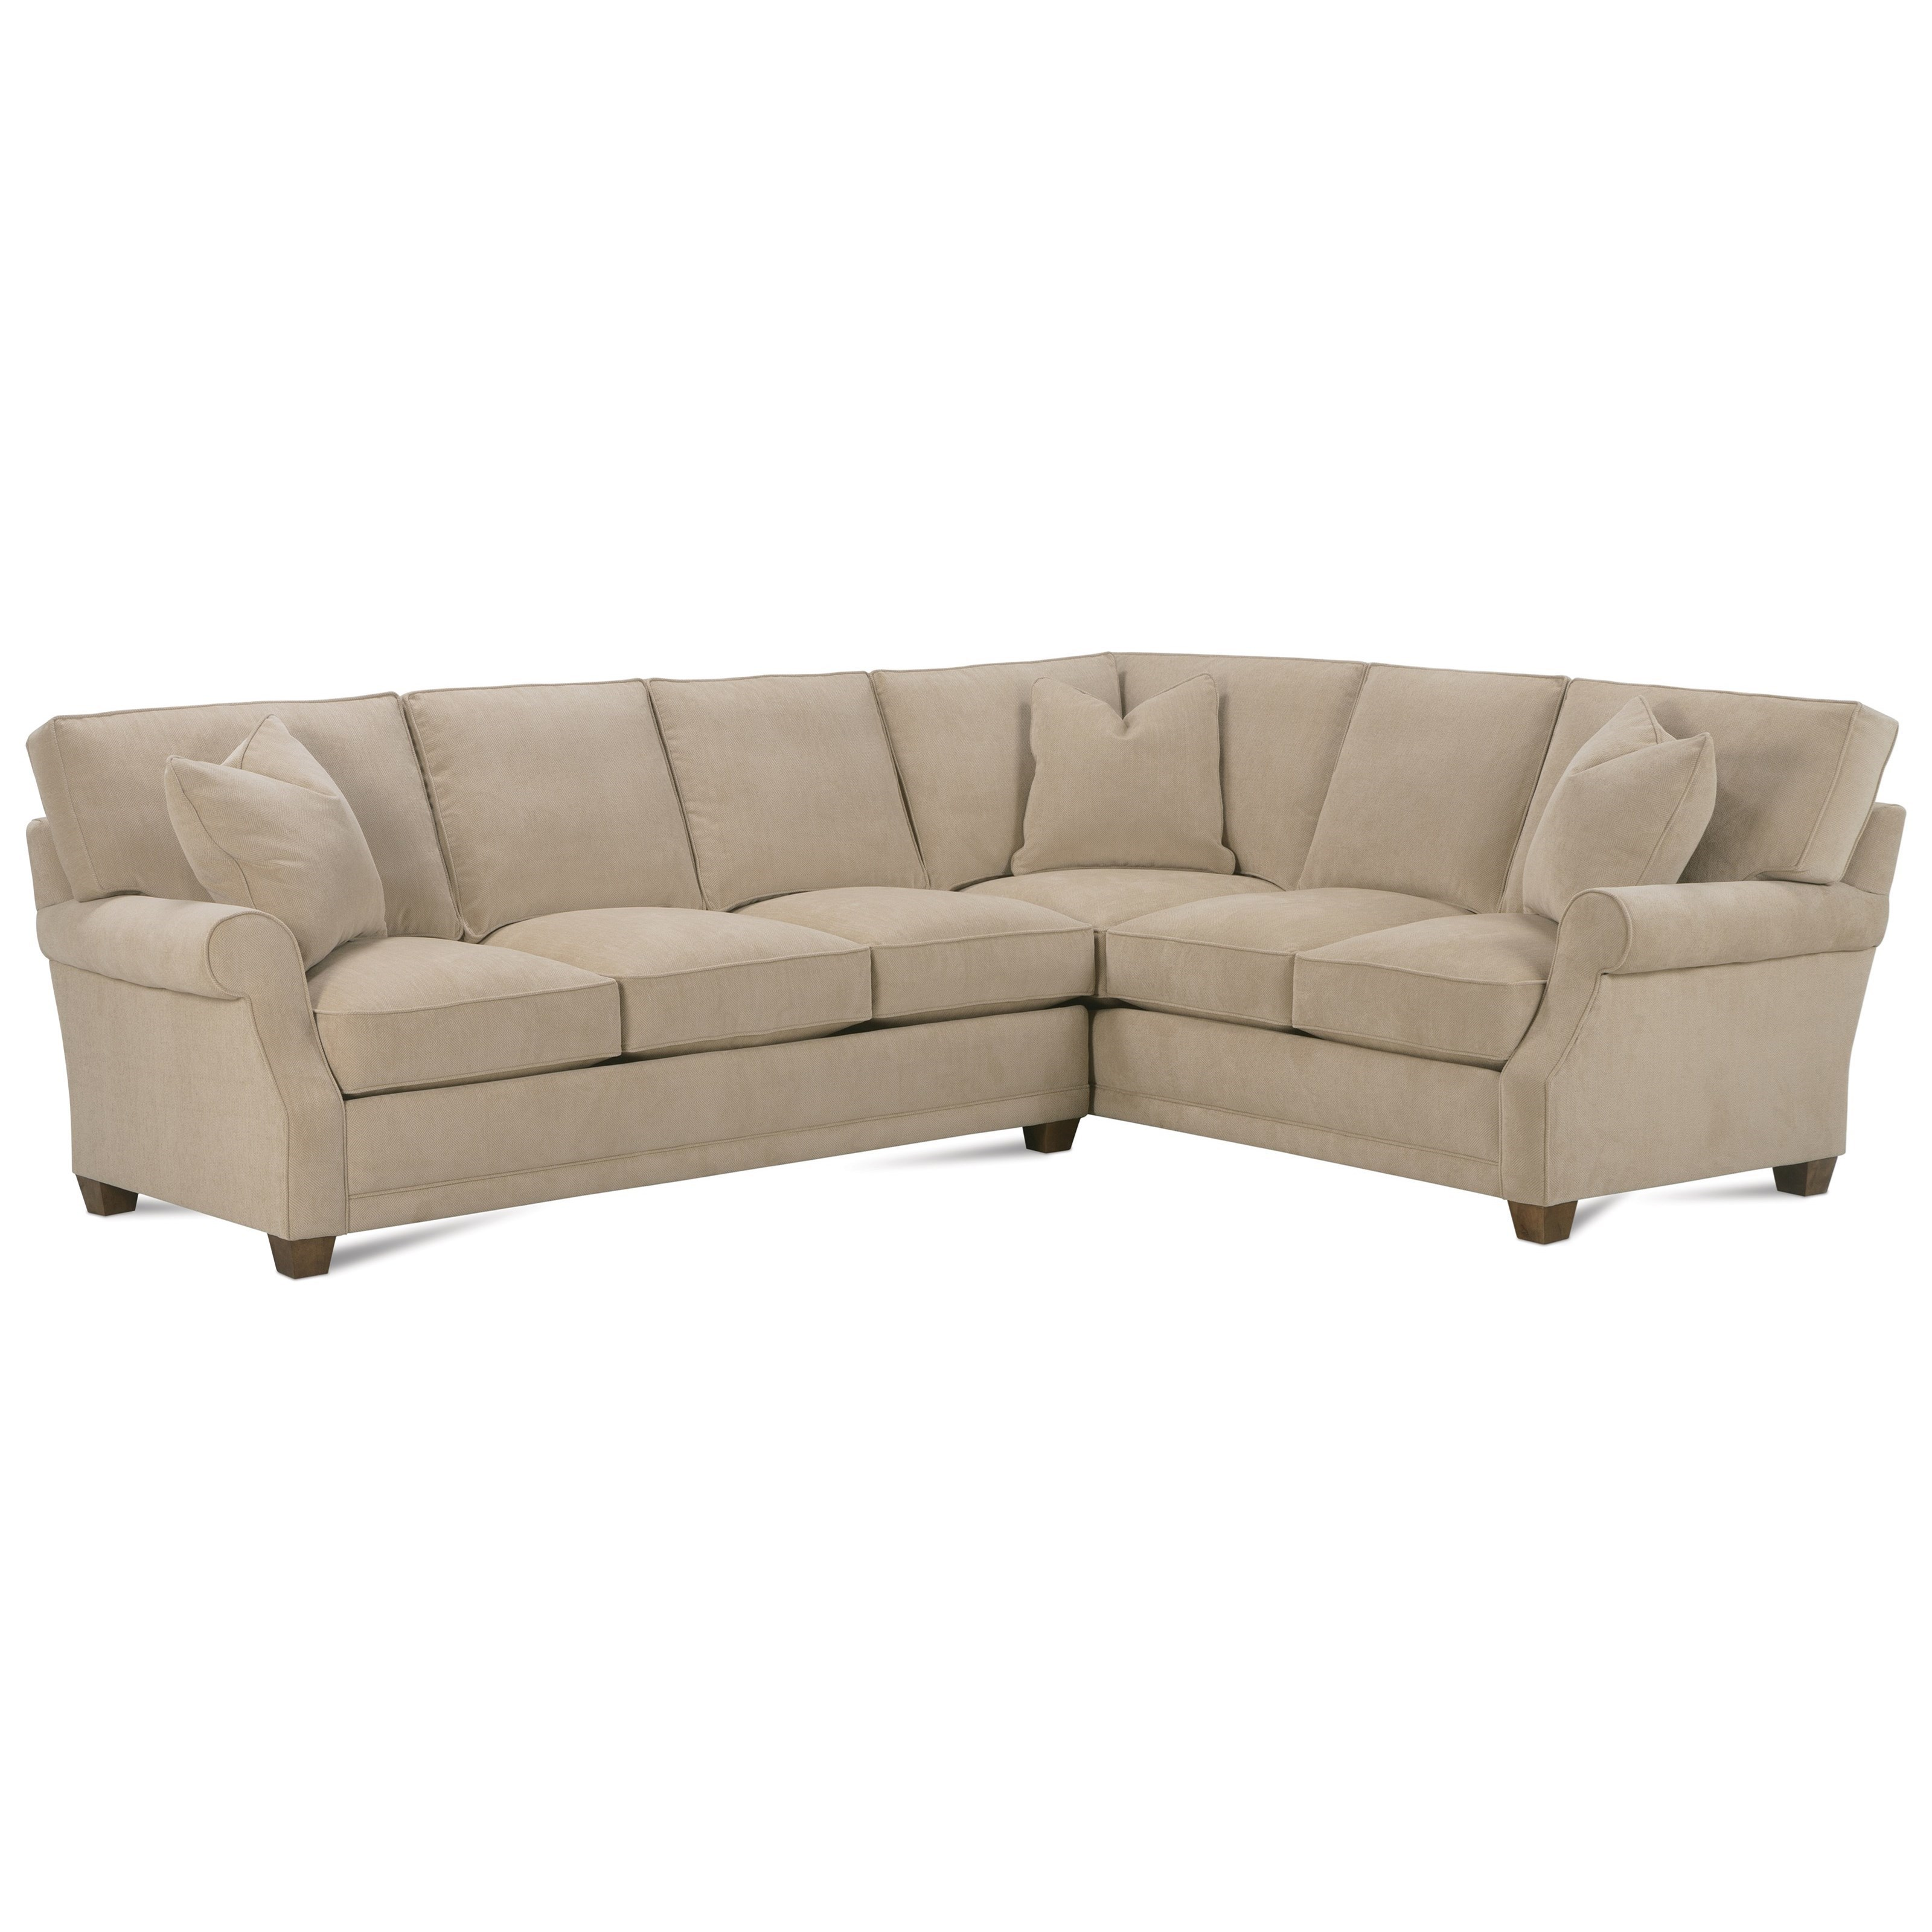 ... Rowe Baker Sectional Sofa. This piece may be shown differently in our showroom than as pictured on website. Select items have different fabric choices ...  sc 1 st  Becker Furniture World : rowe sectional sofas - Sectionals, Sofas & Couches